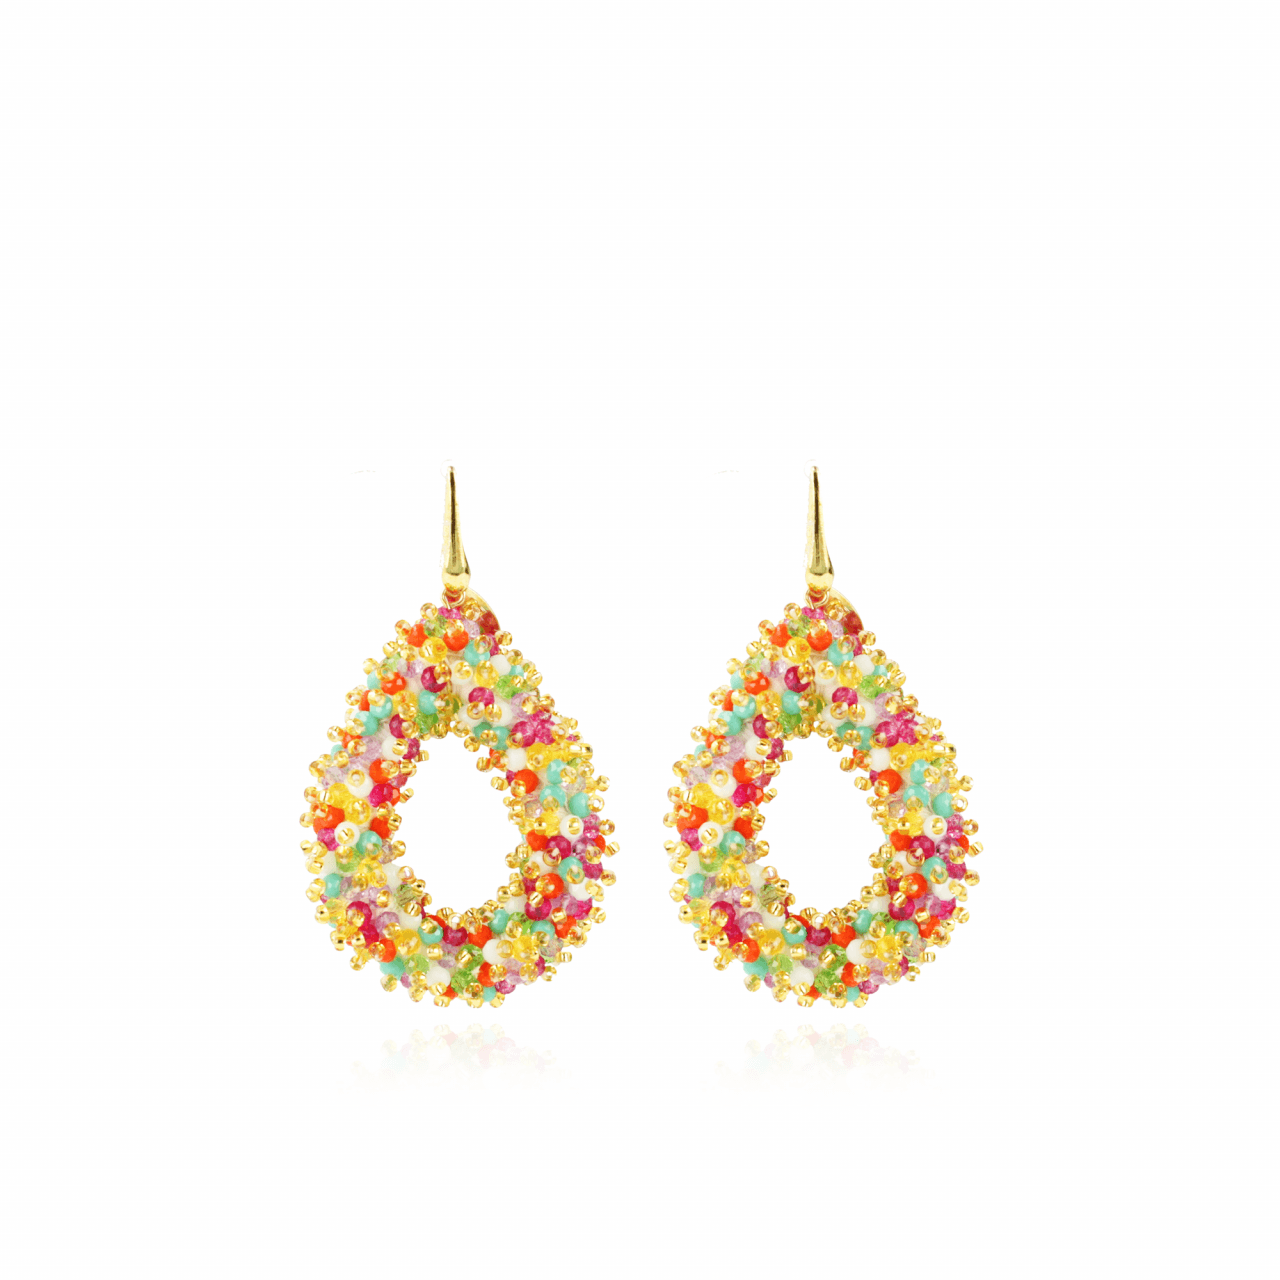 Berry drop L double stones multicolor oorbellen